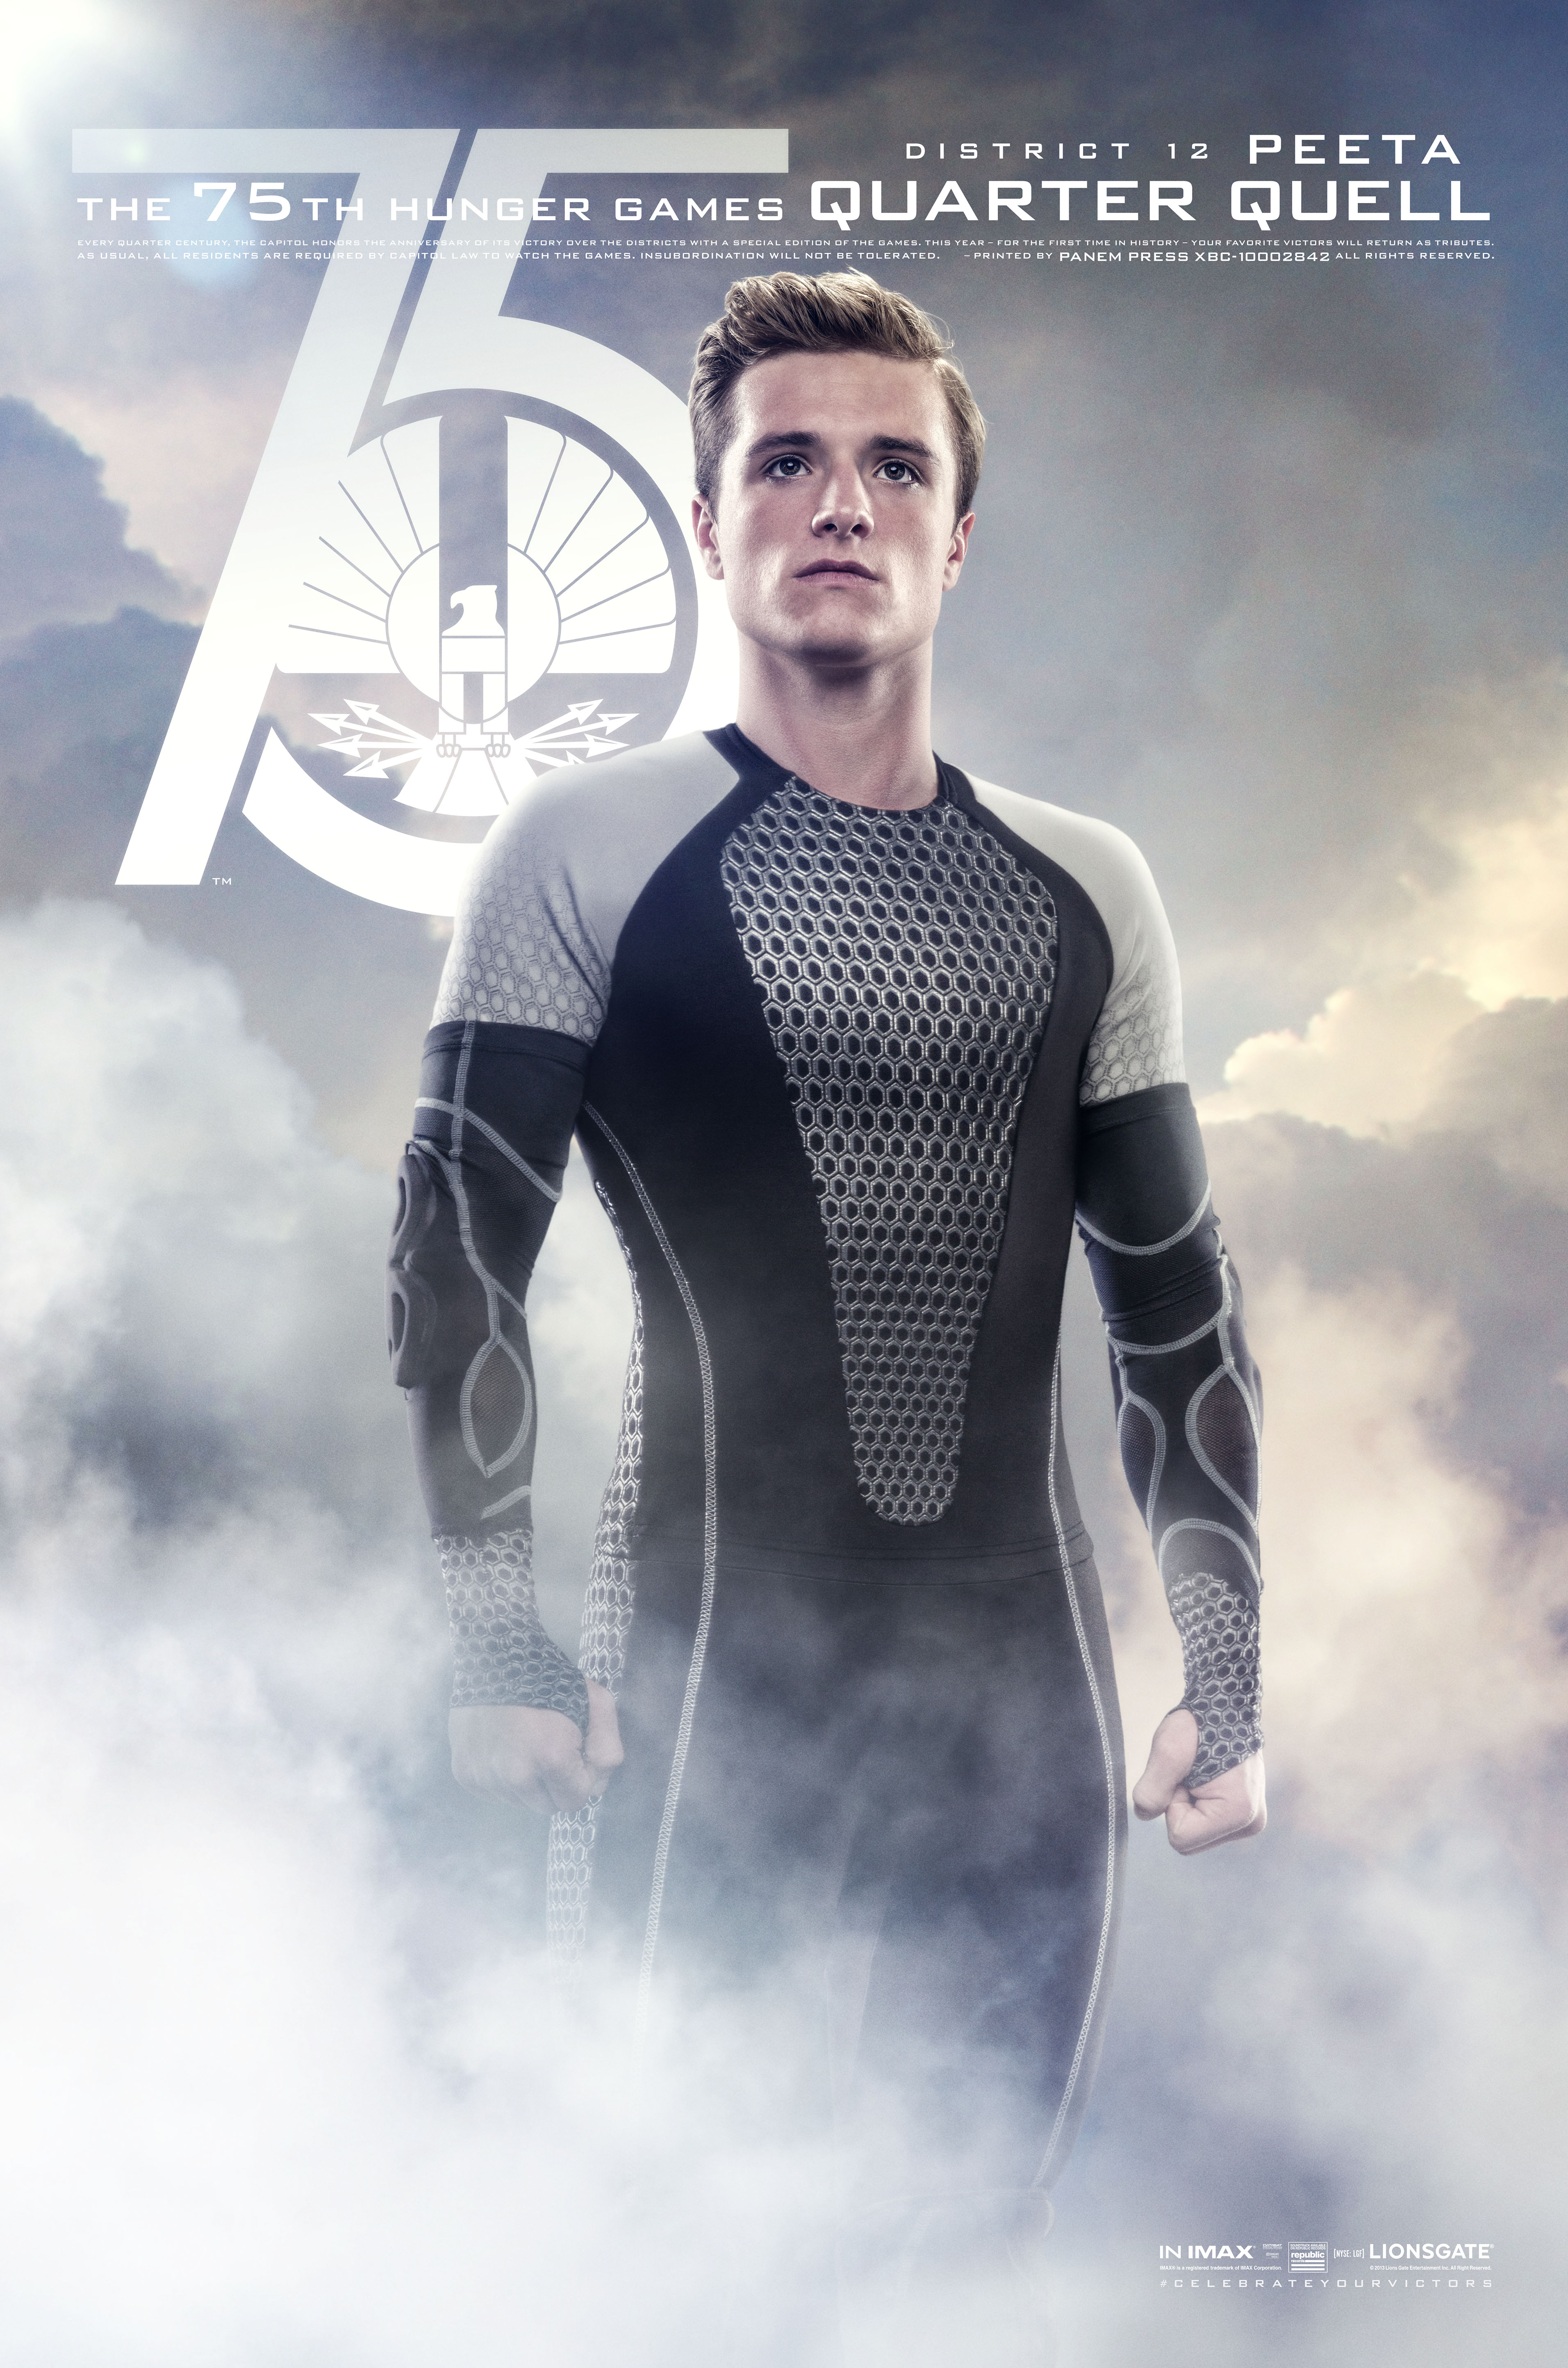 FIN03 Idiom 1Sht QQ Peeta1 Catching Fire Victors Banner Unveiled on The Hunger Games Explorer